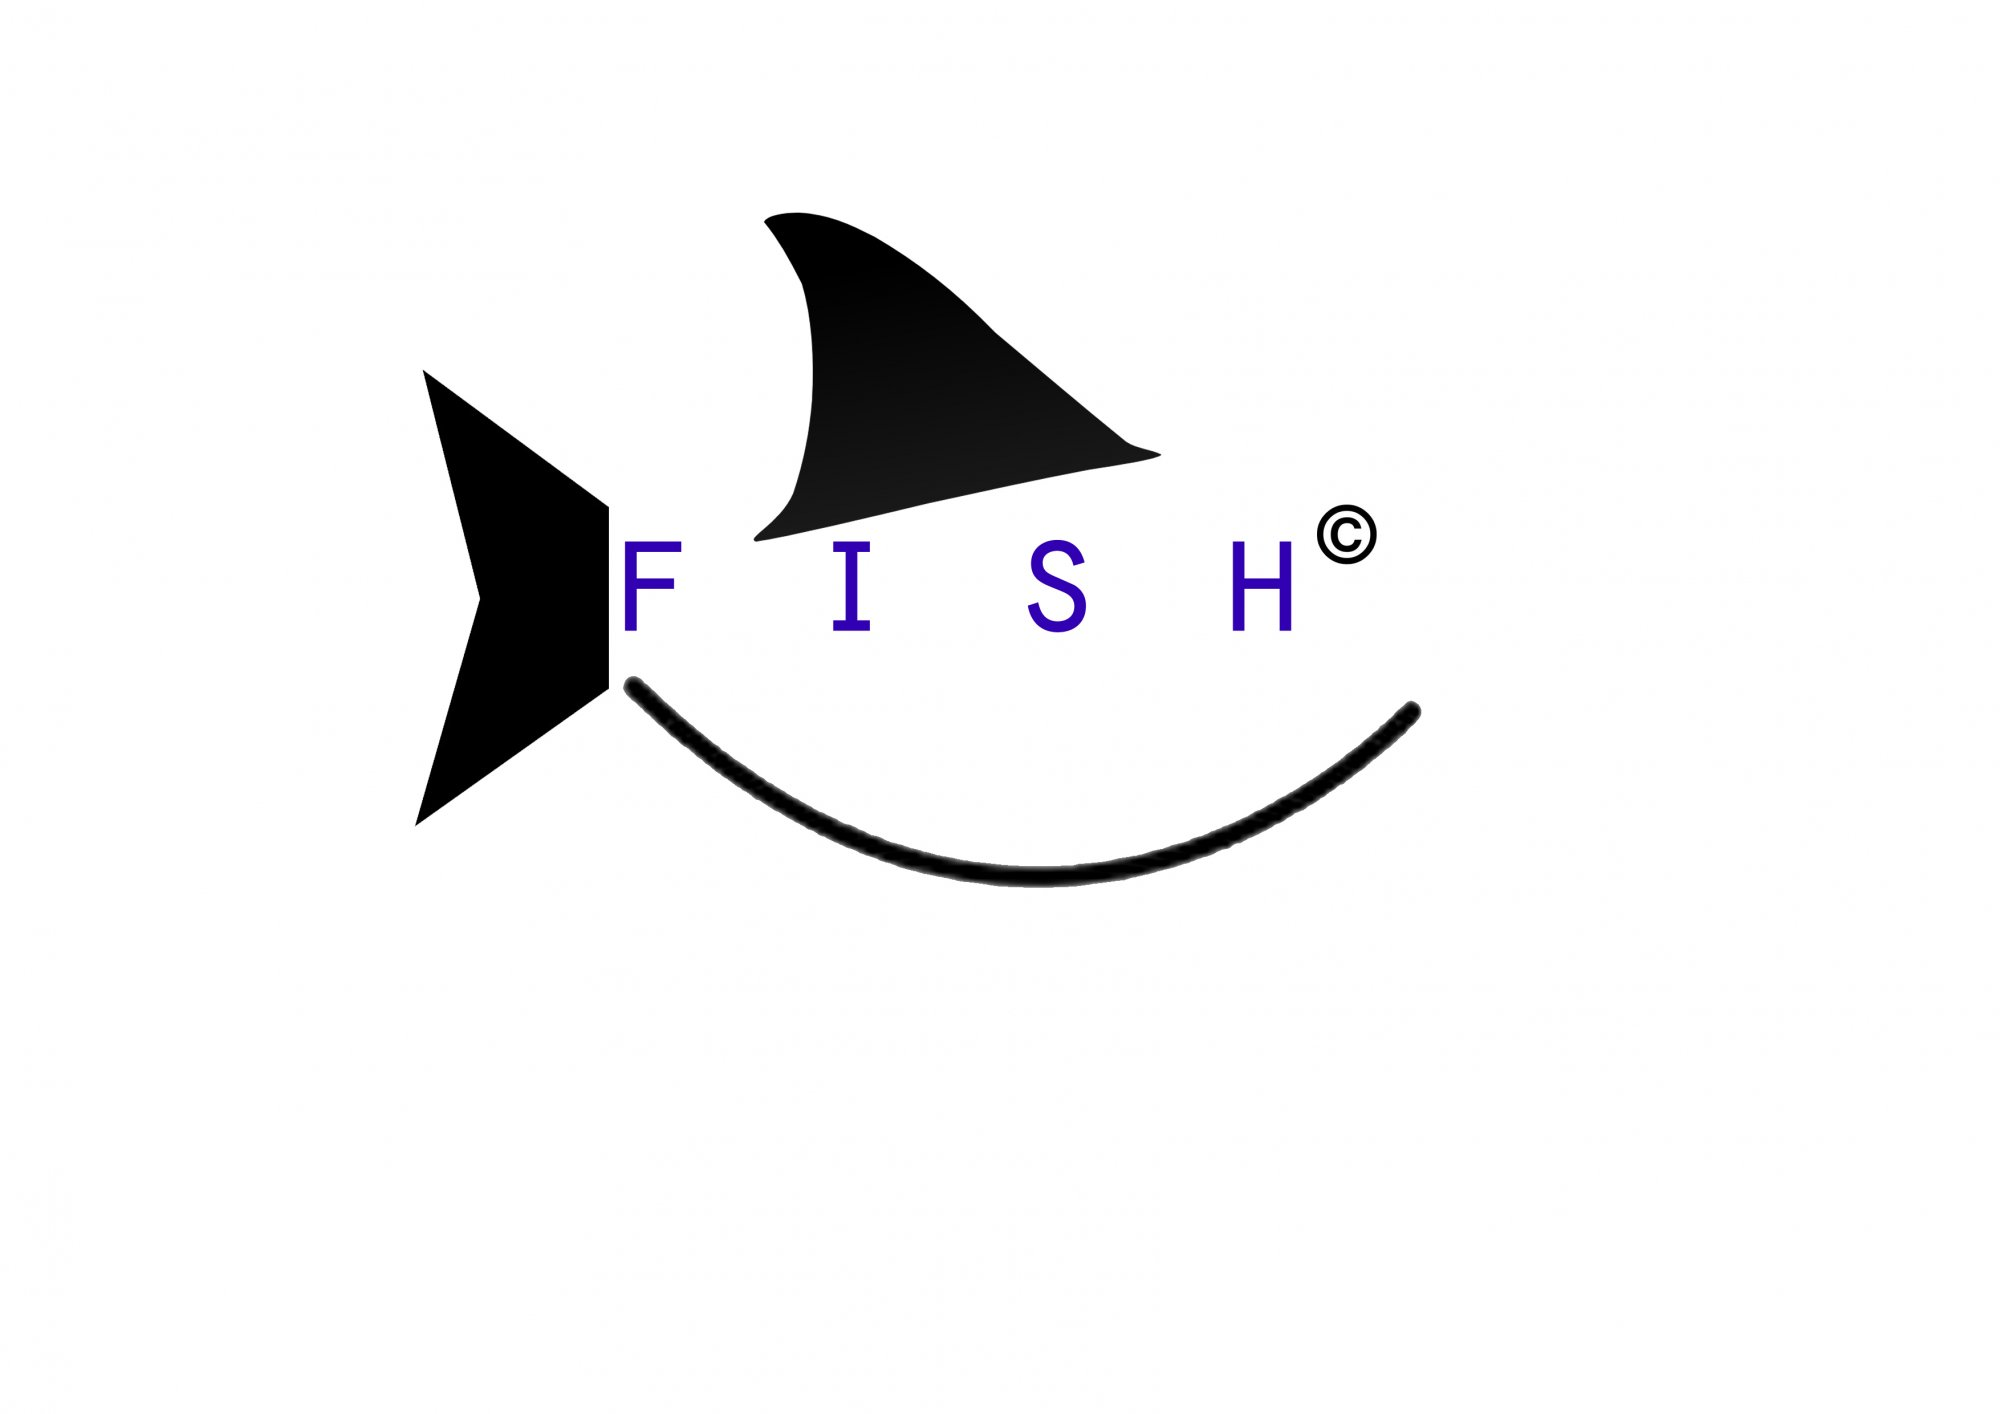 10 Fish Logo Design Images